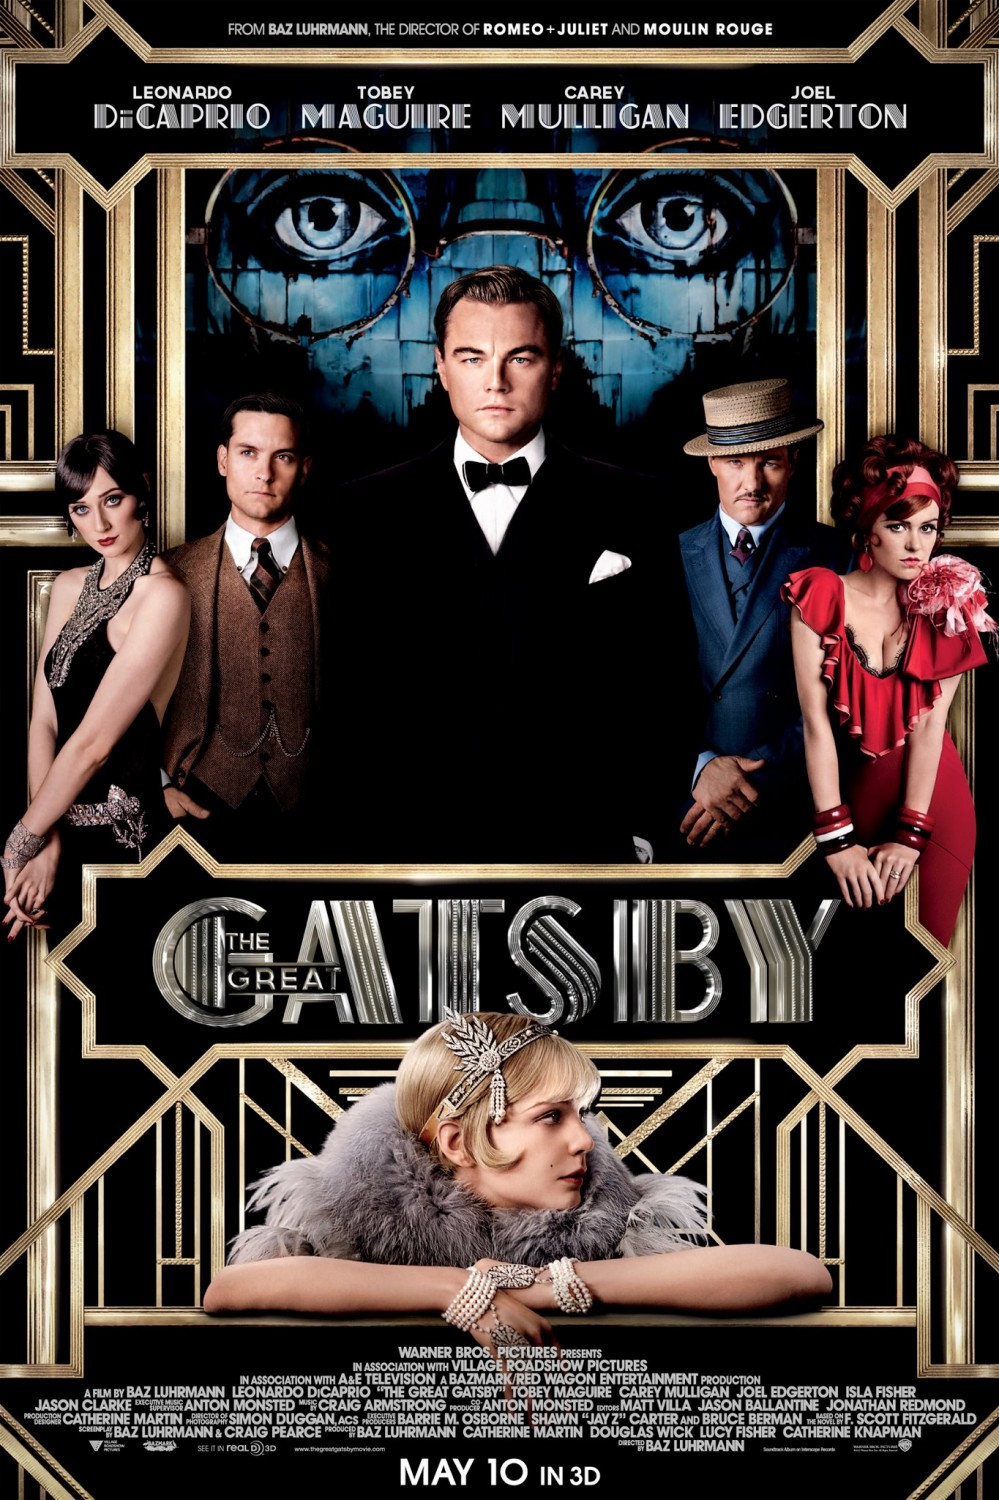 the great gatsby review and r ce analysis smart bitches the great gatsby movie poster